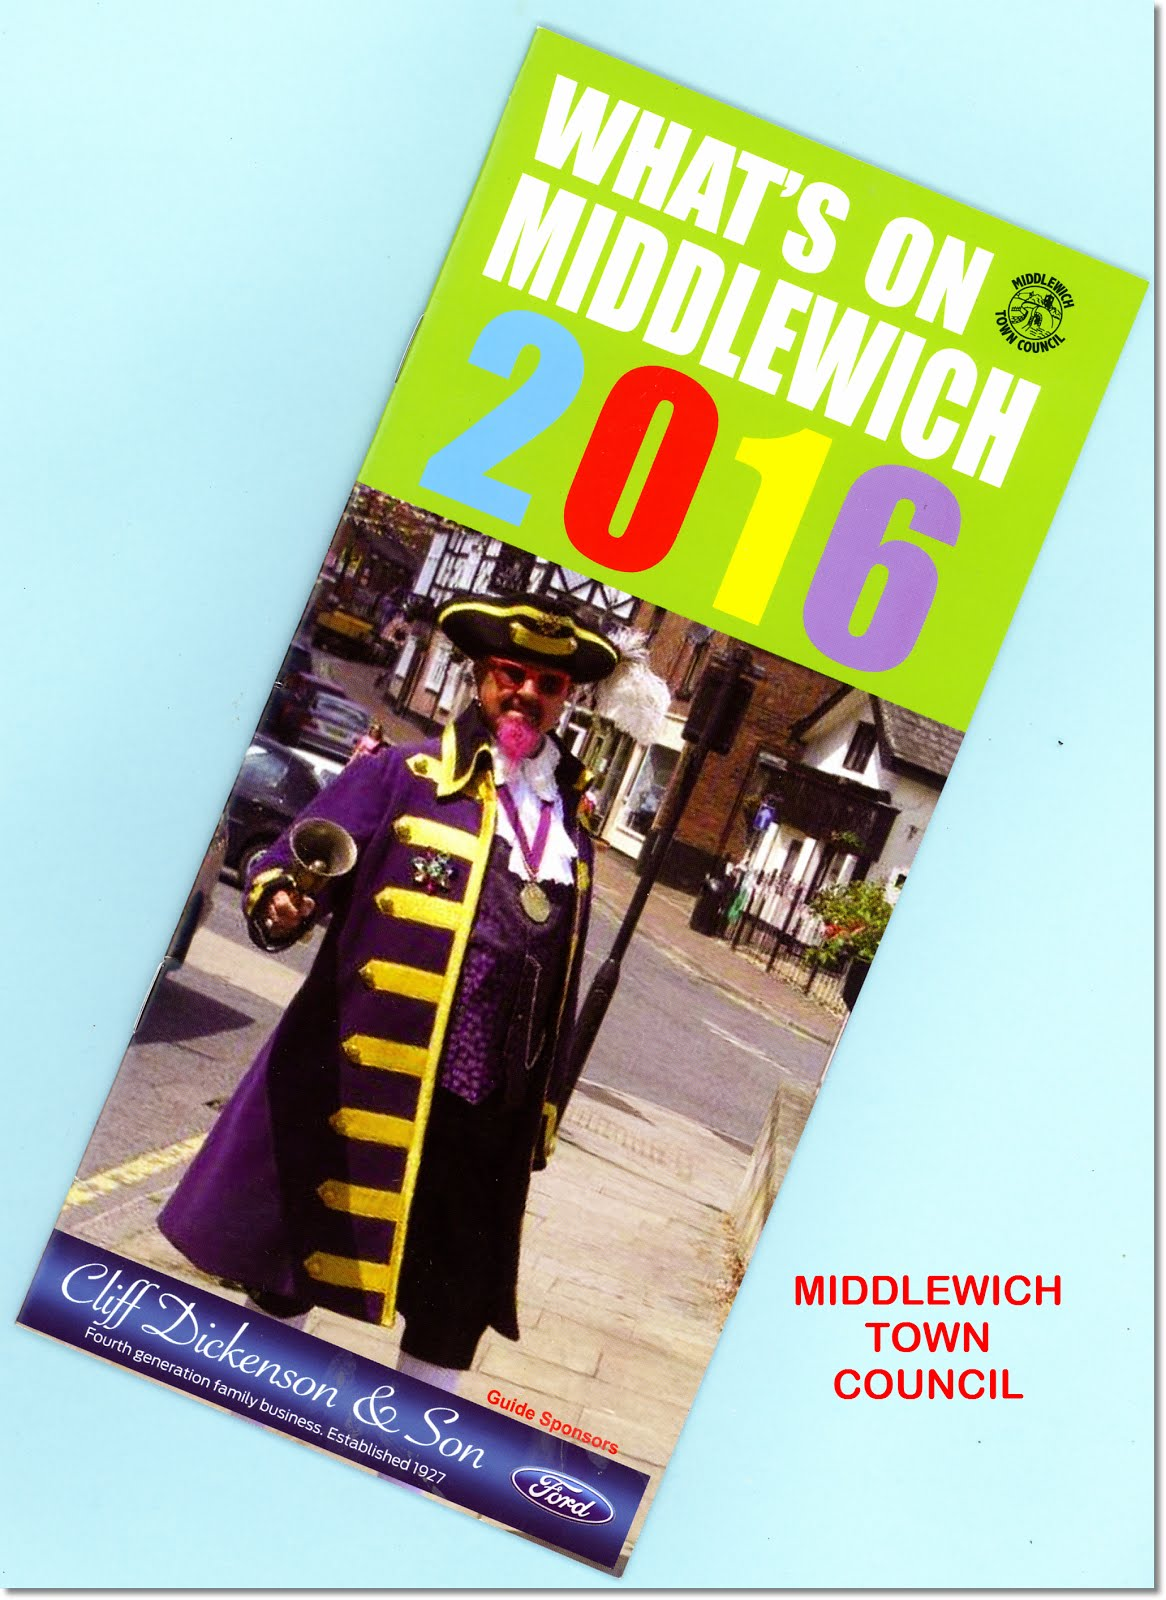 WHAT'S ON IN MIDDLEWICH THIS YEAR?